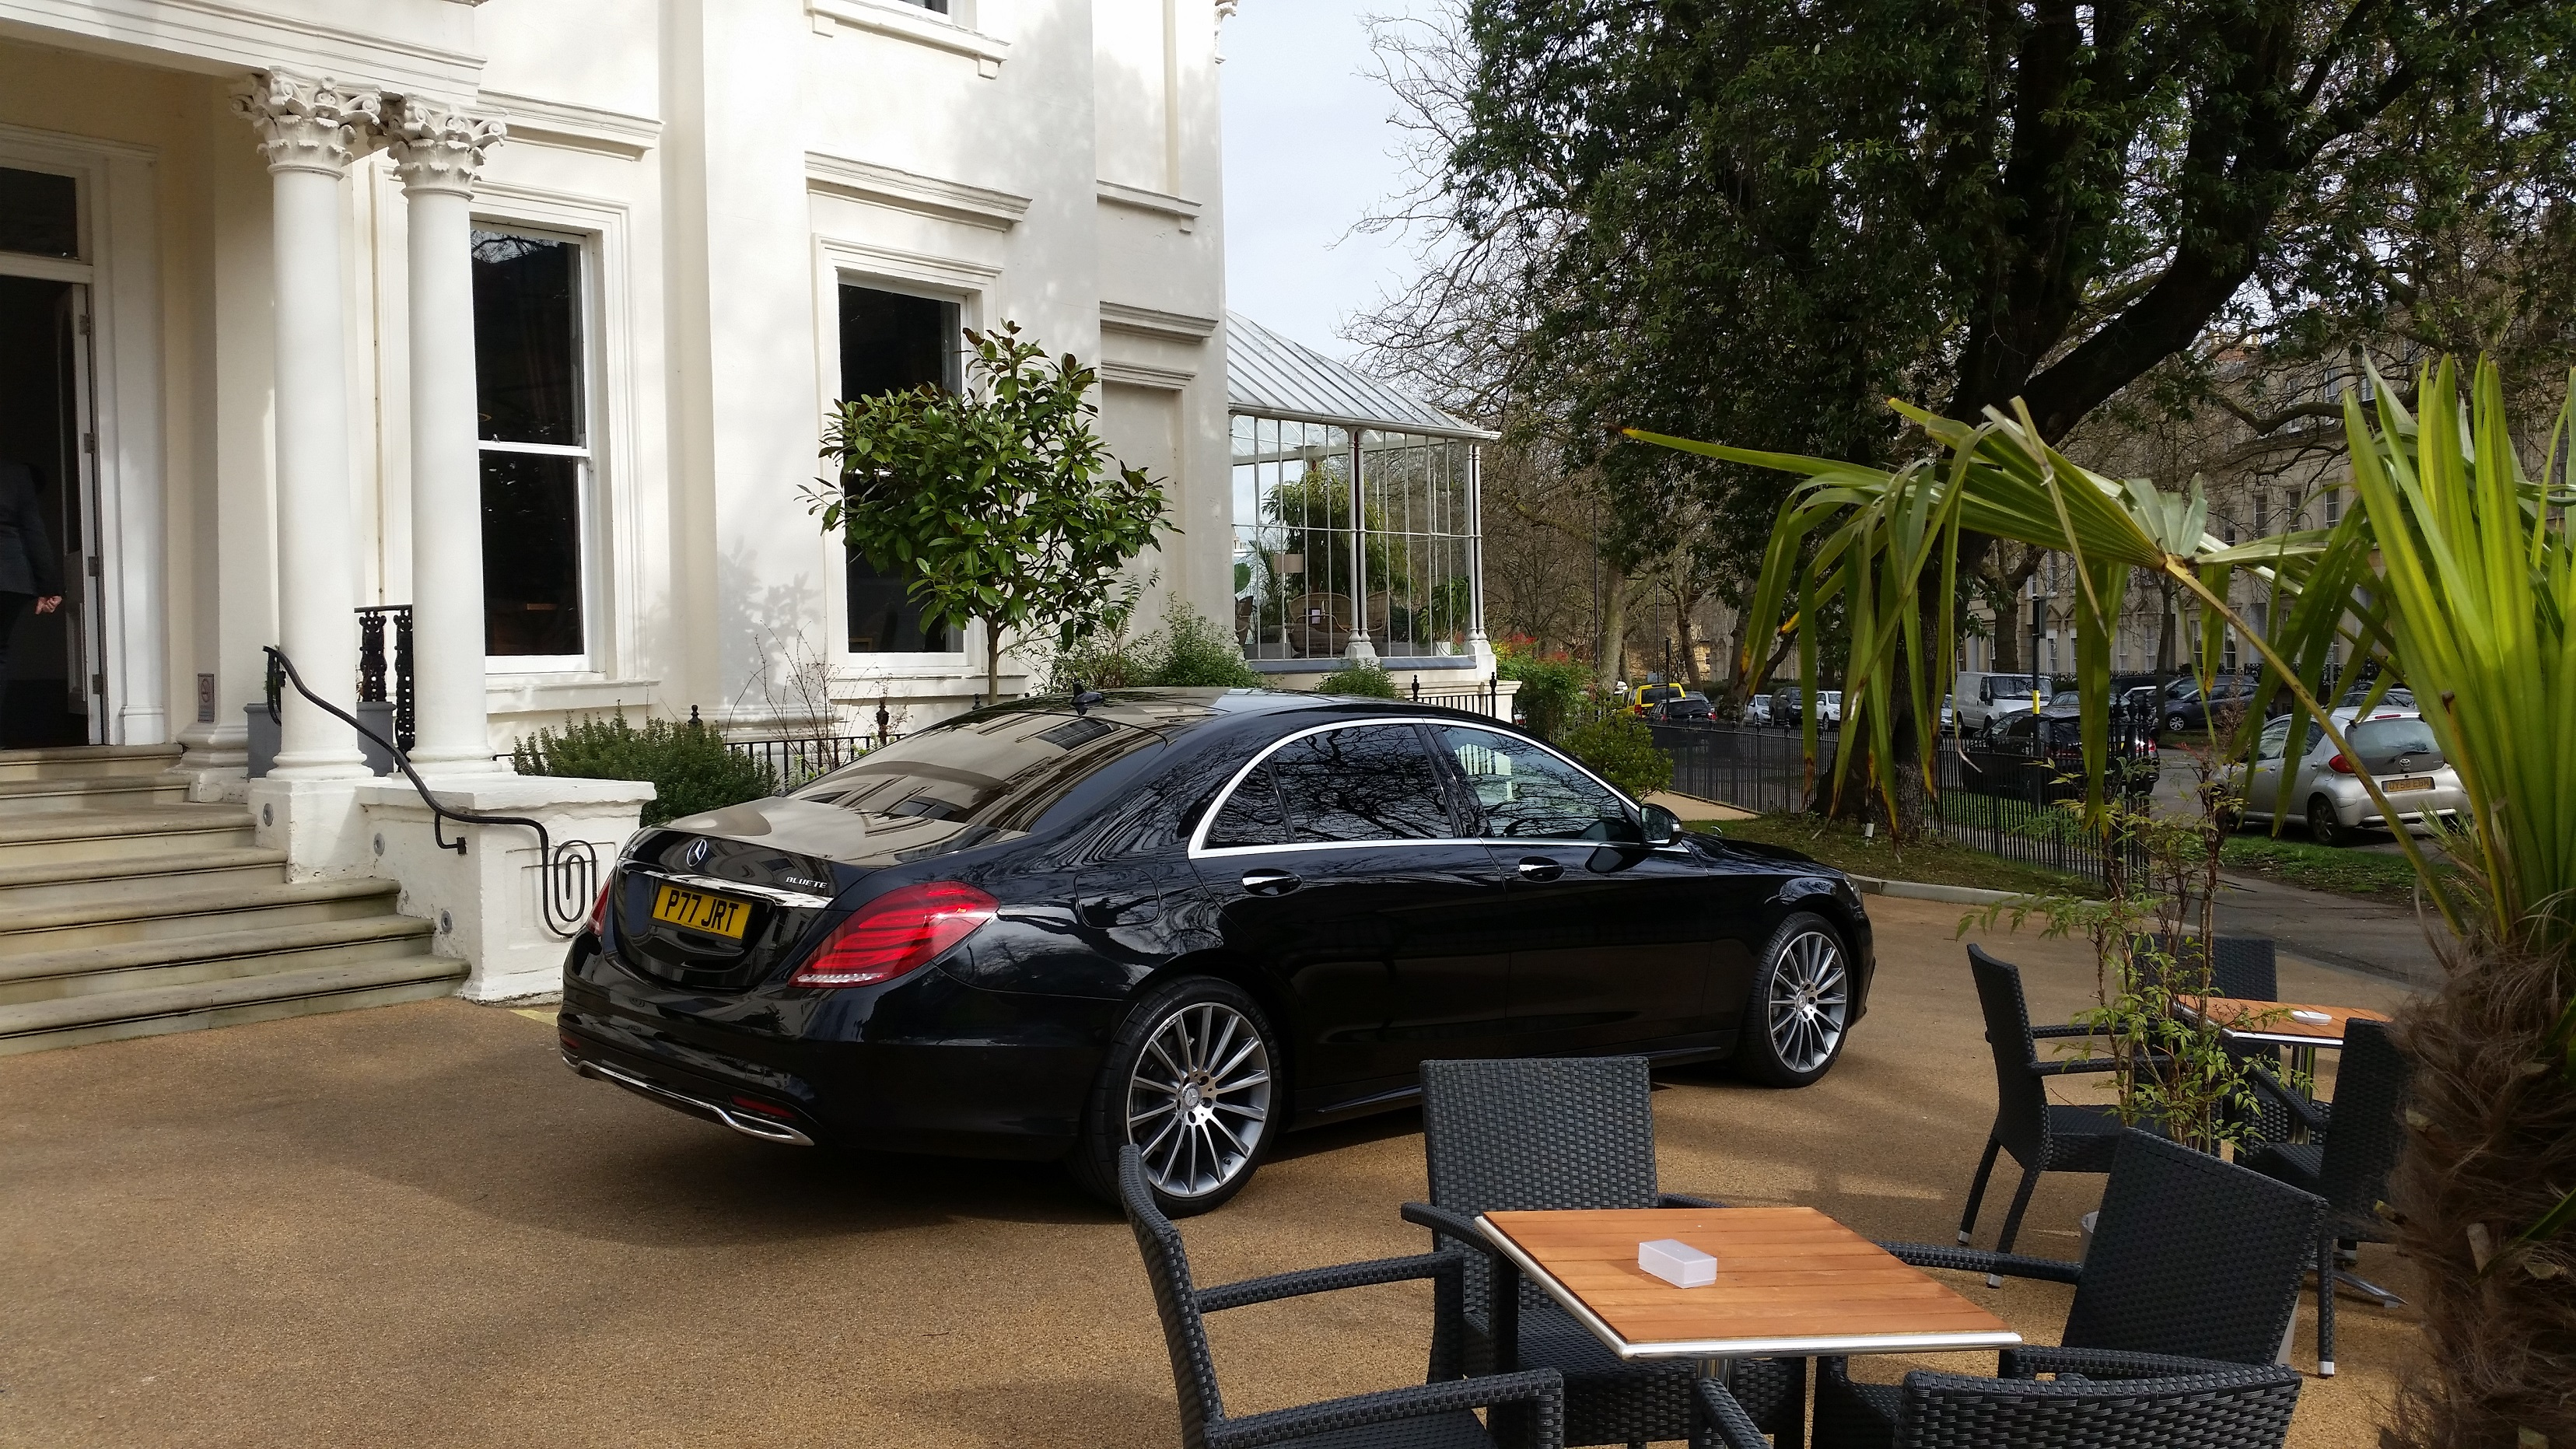 Chauffeur waiting to pick up client